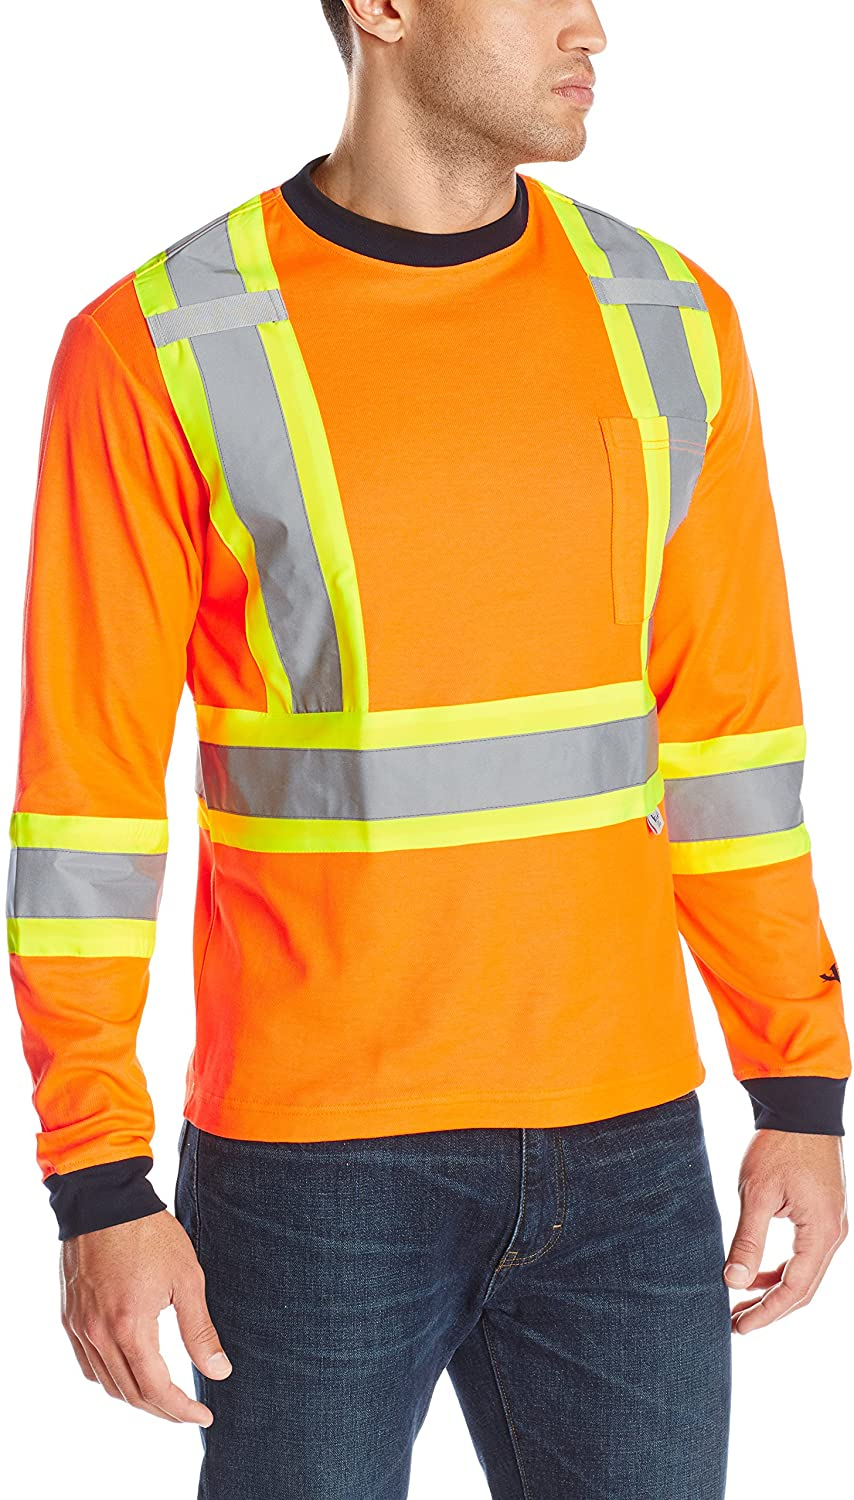 Men's Viking Hi-Vis Class 2 Safety Cotton Lined Long Sleeve Shirt in Orange from the front